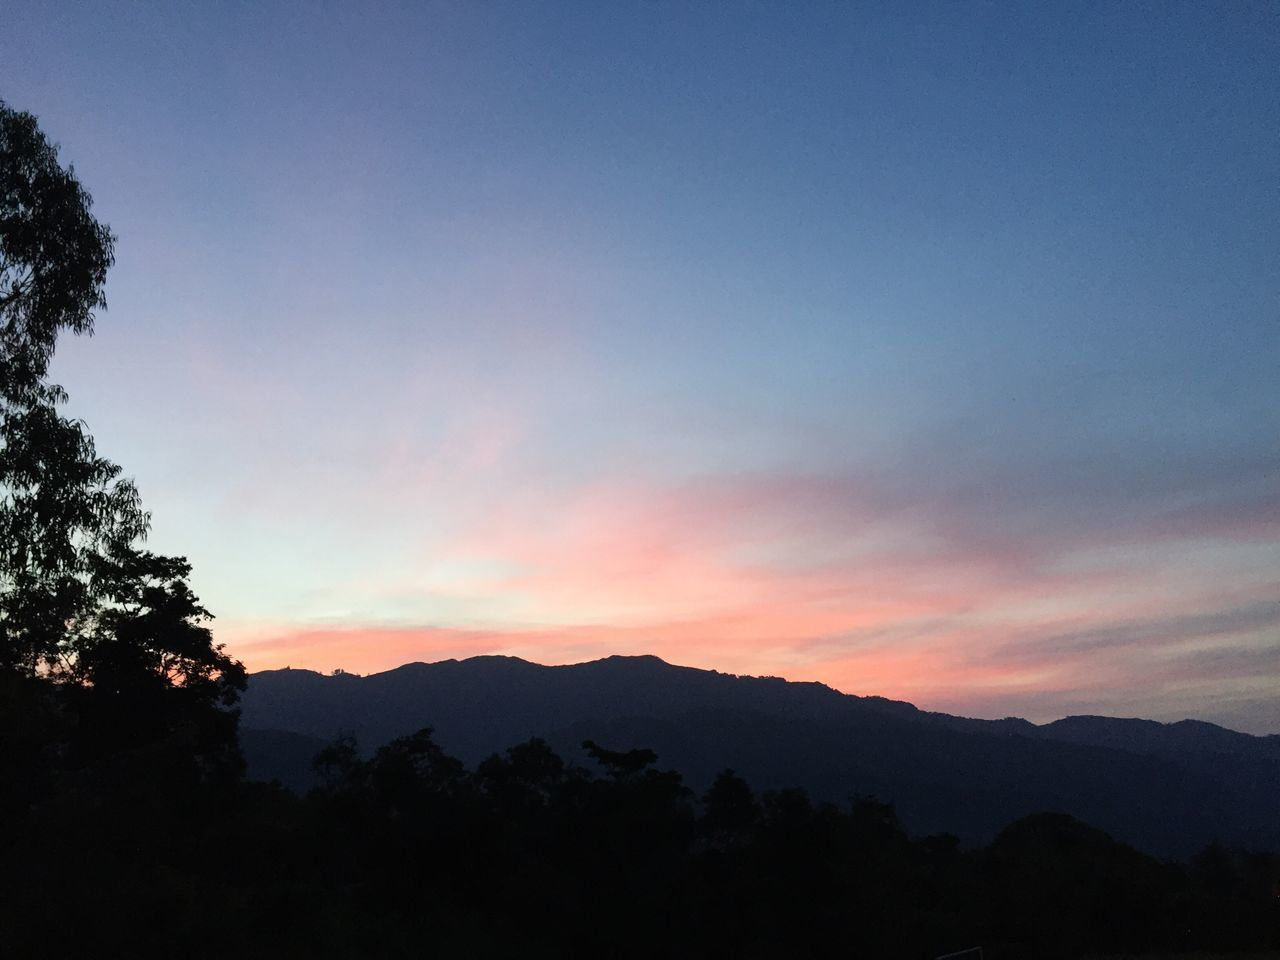 silhouette, nature, beauty in nature, tranquility, mountain, tranquil scene, scenics, sunset, tree, sky, idyllic, no people, outdoors, mountain range, day